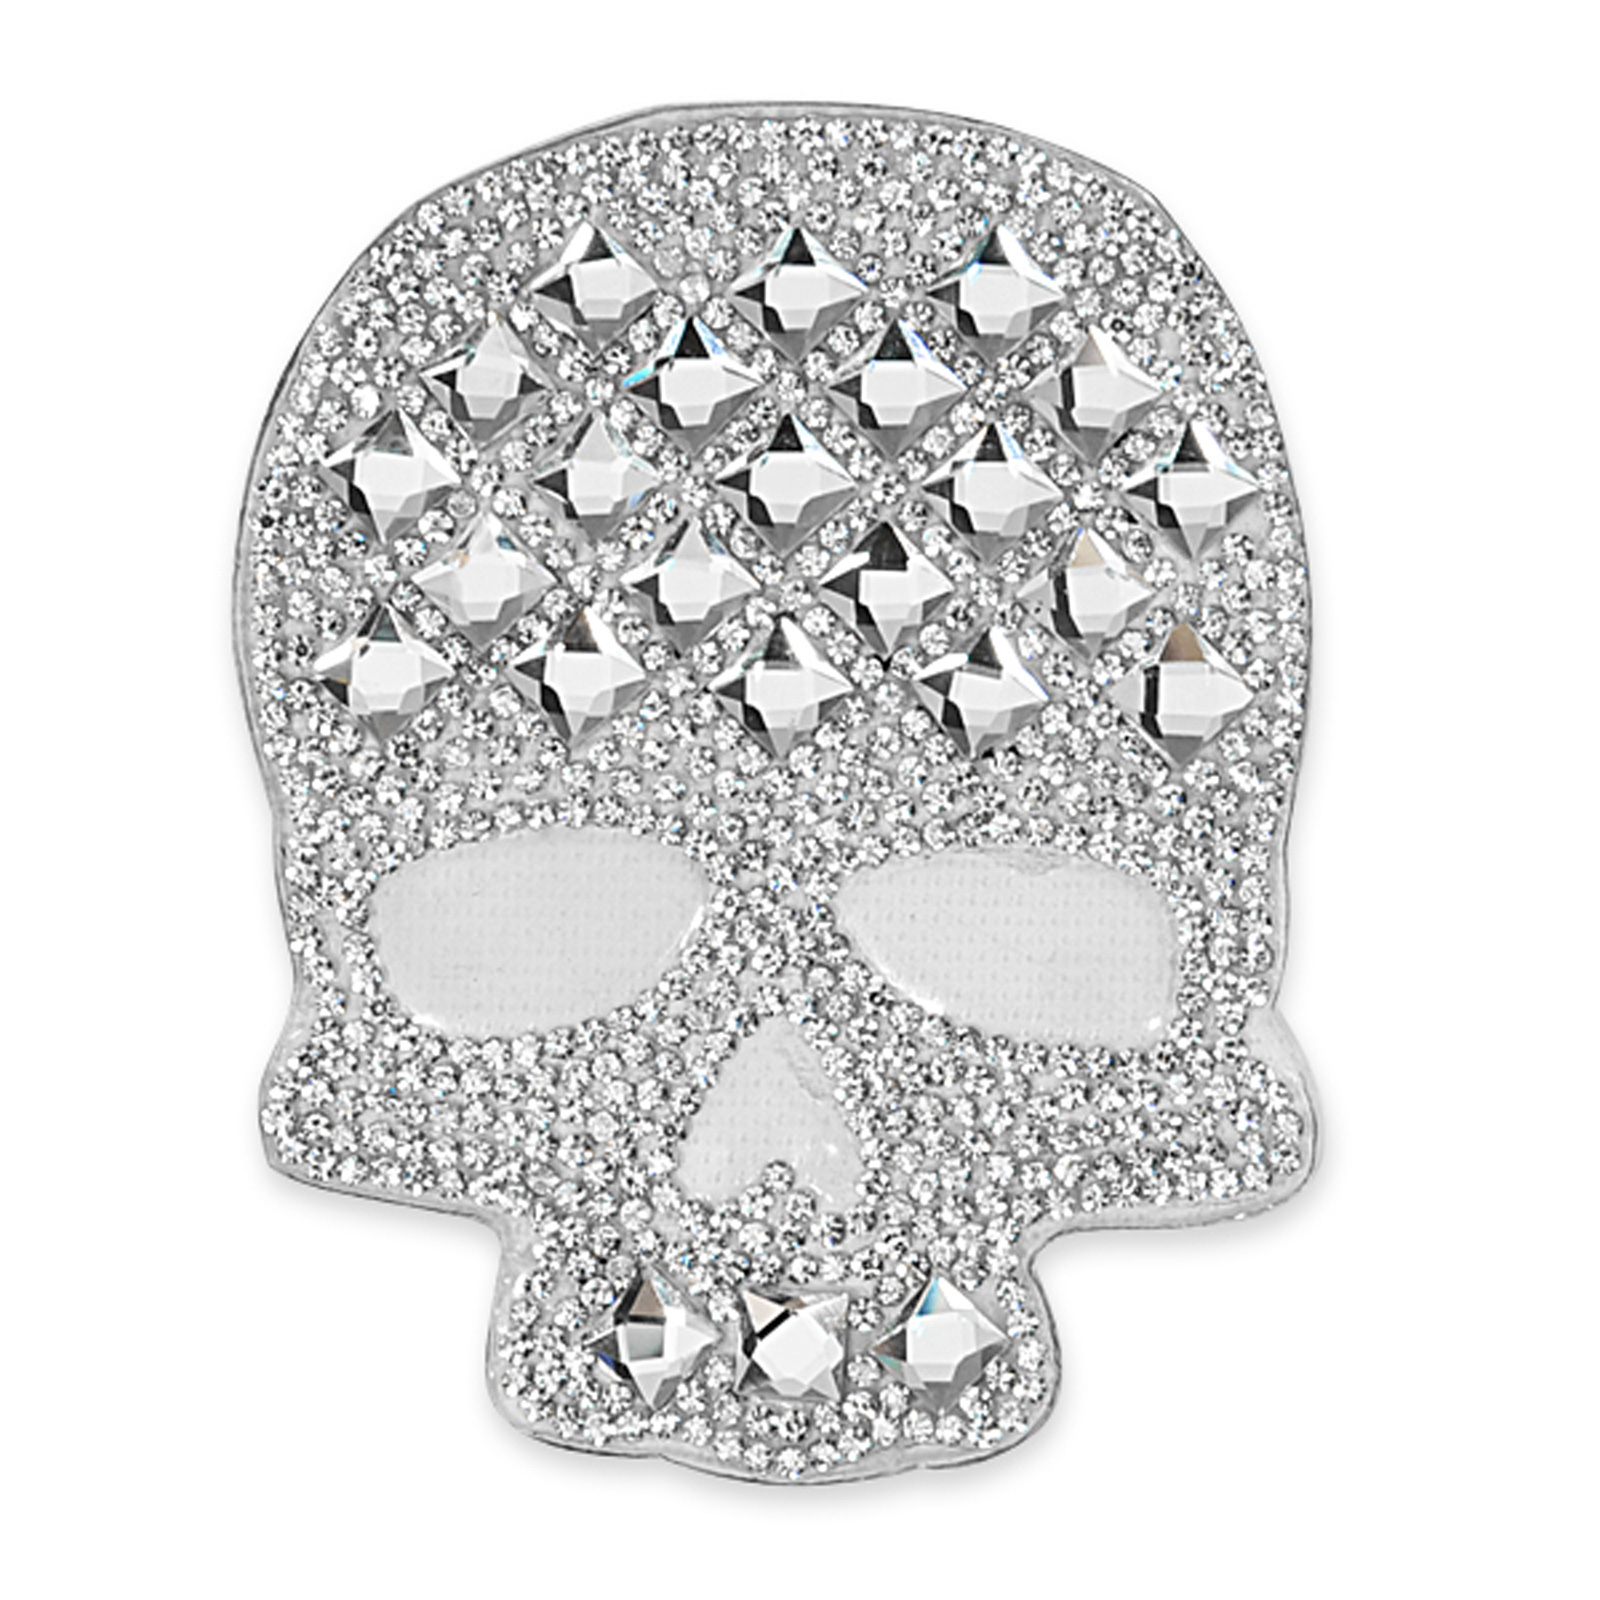 4 1/8'' x 3 1/8'' Iron On Rhinestone Skull Applique by Expo in USA